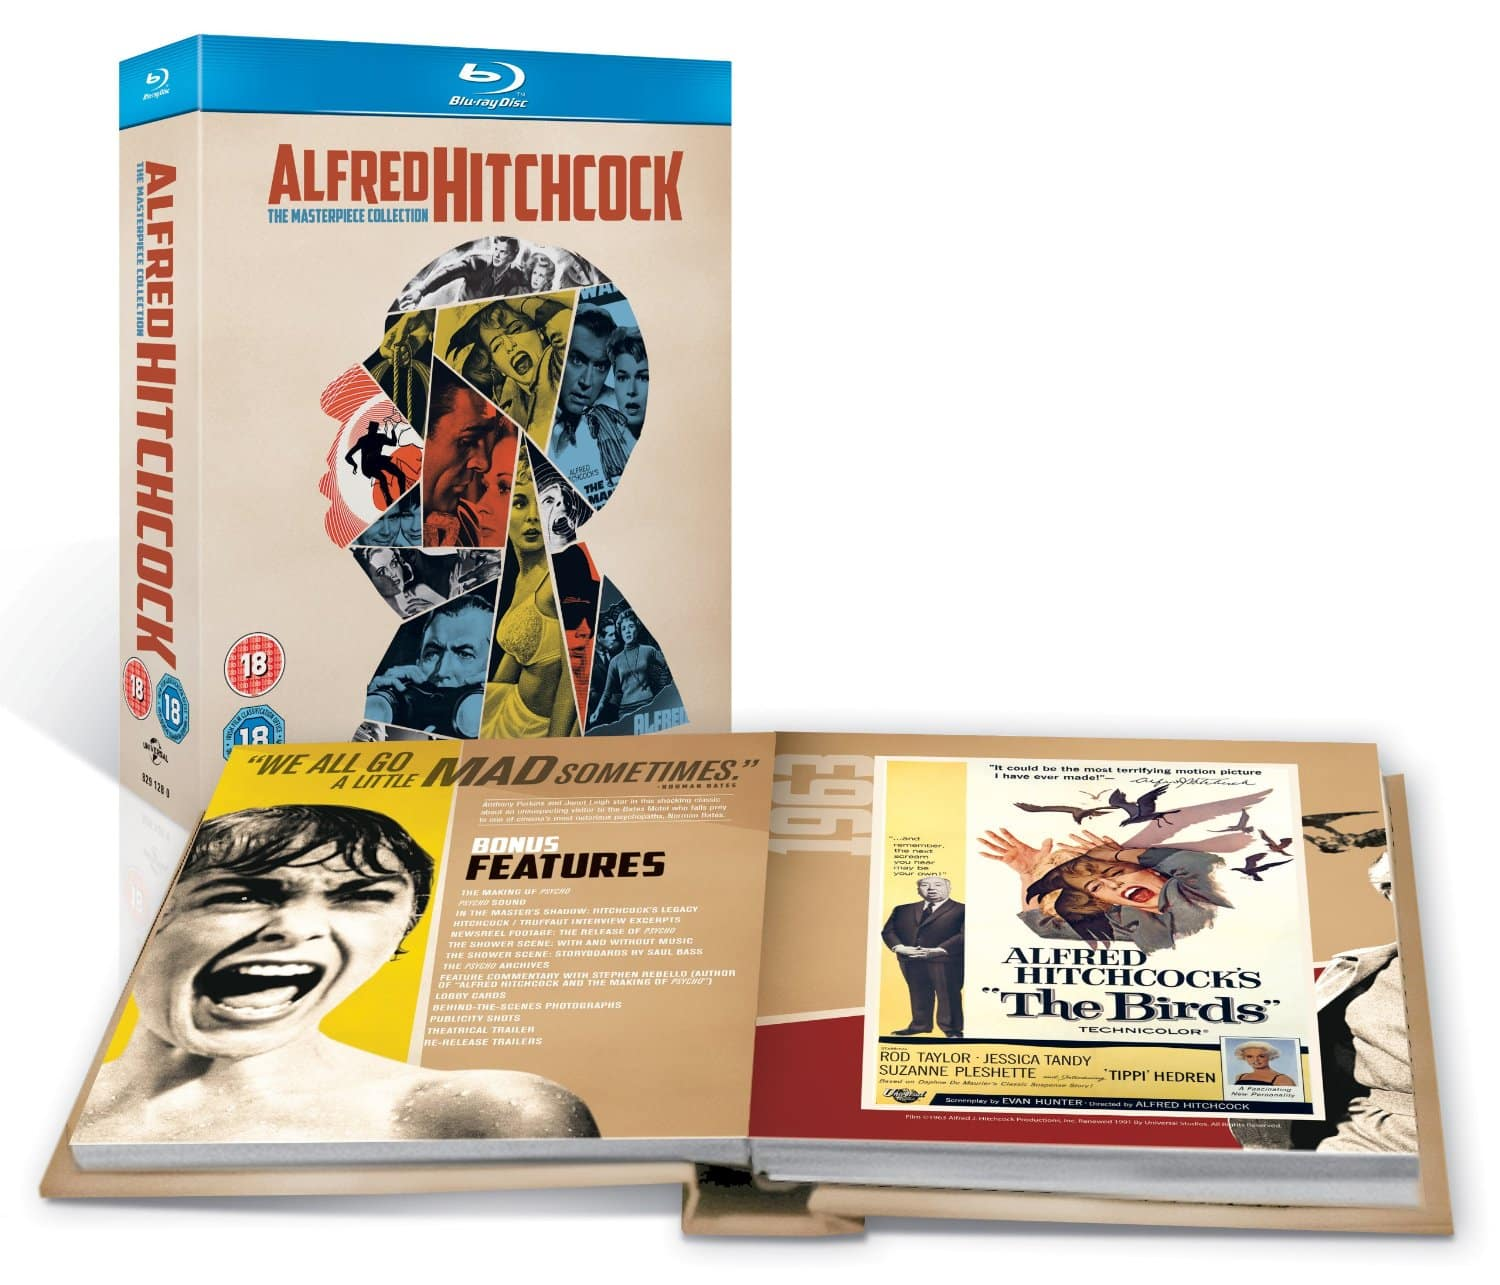 Alfred Hitchcock The Masterpiece Collection (Region Free Blu-ray)  $27